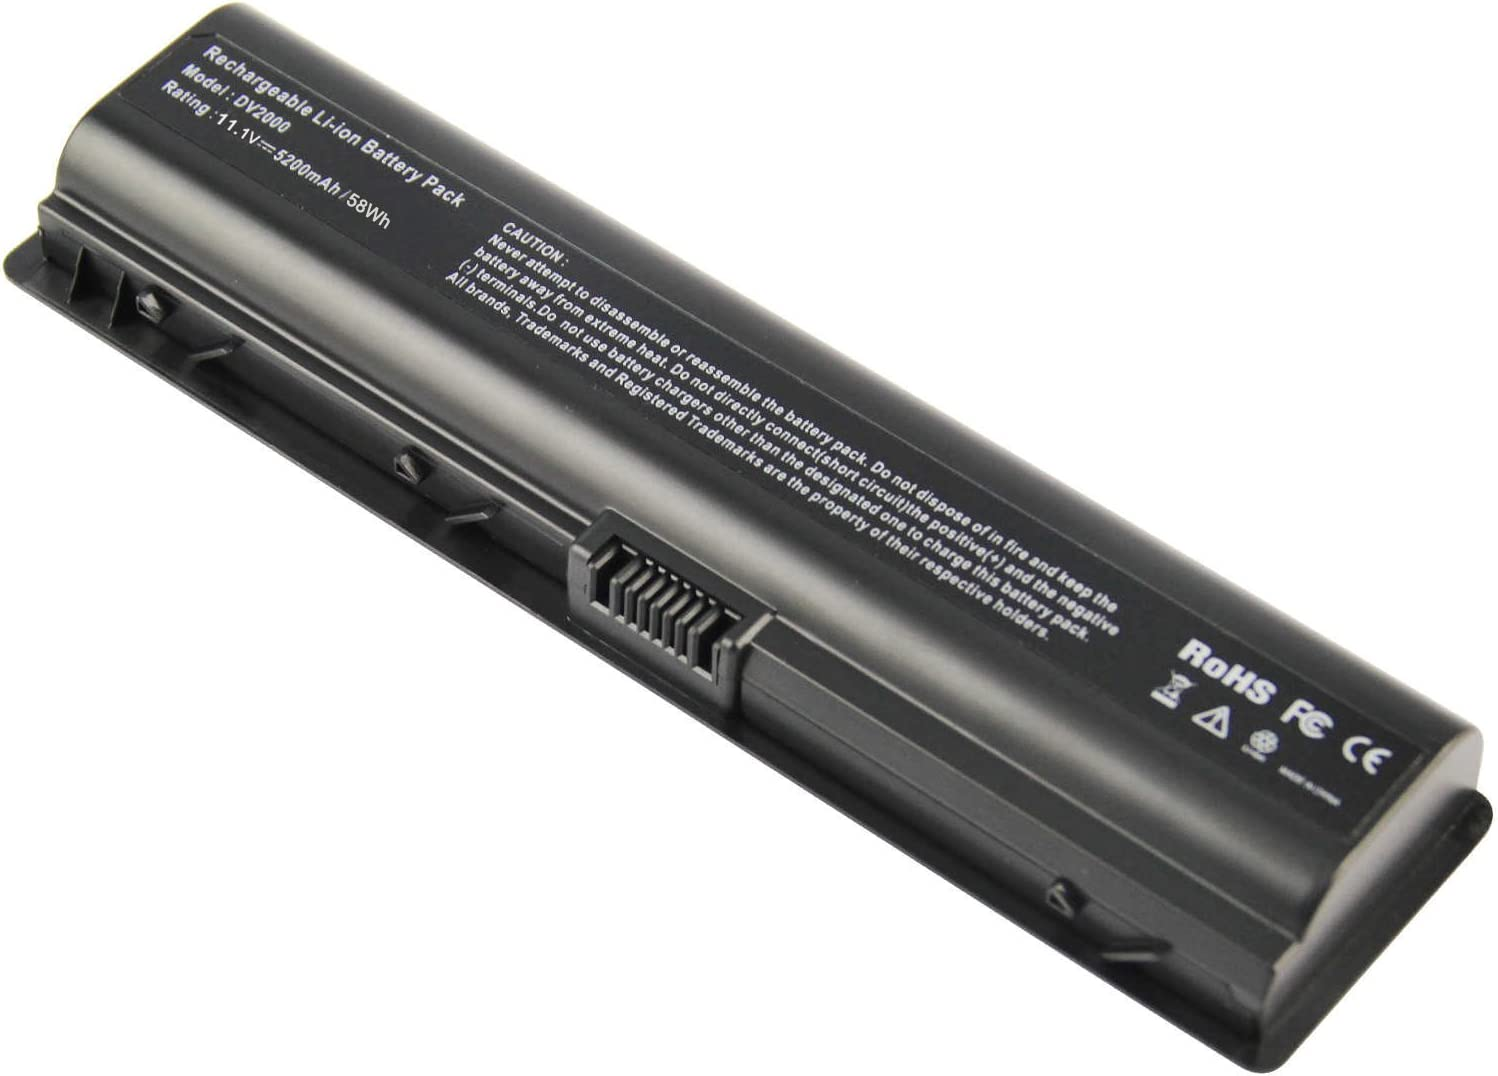 AC Doctor INC 6Cell 5200mAh Battery for HP Pavilion DV6000 DV2000 EV088AA 446506-001 C700 F500 Laptop 10.8V 6 Cell New